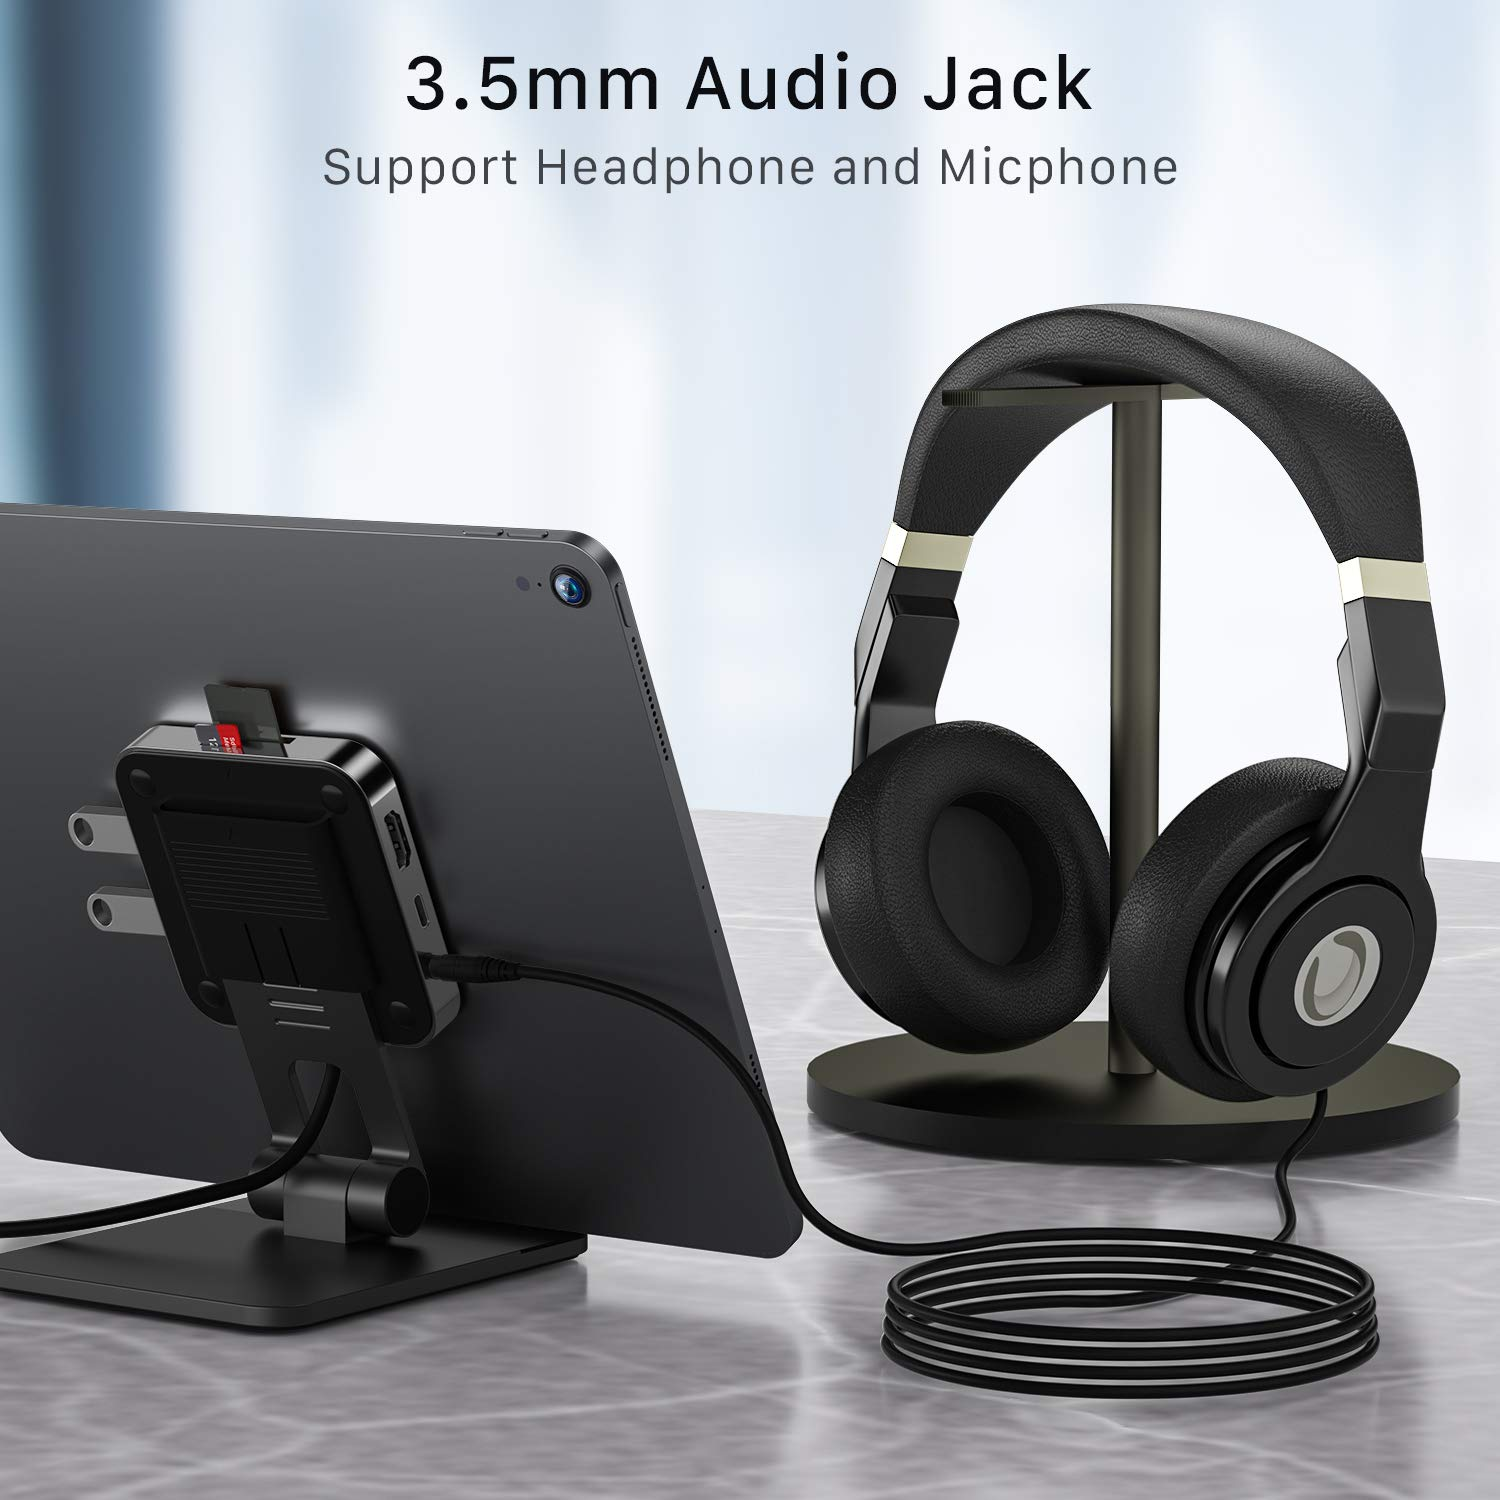 USB C Hub Stand iPad Pro, BYEASY foldable Multiport Adapter Dongle with HDMI 4K Adapter, PD Charging, 2 USB 3.0 ports, SD/TF Card Reader, 3.5mm Headphone Jack for Galaxy Tab S4, S5e, S6, Huawei M5/M6